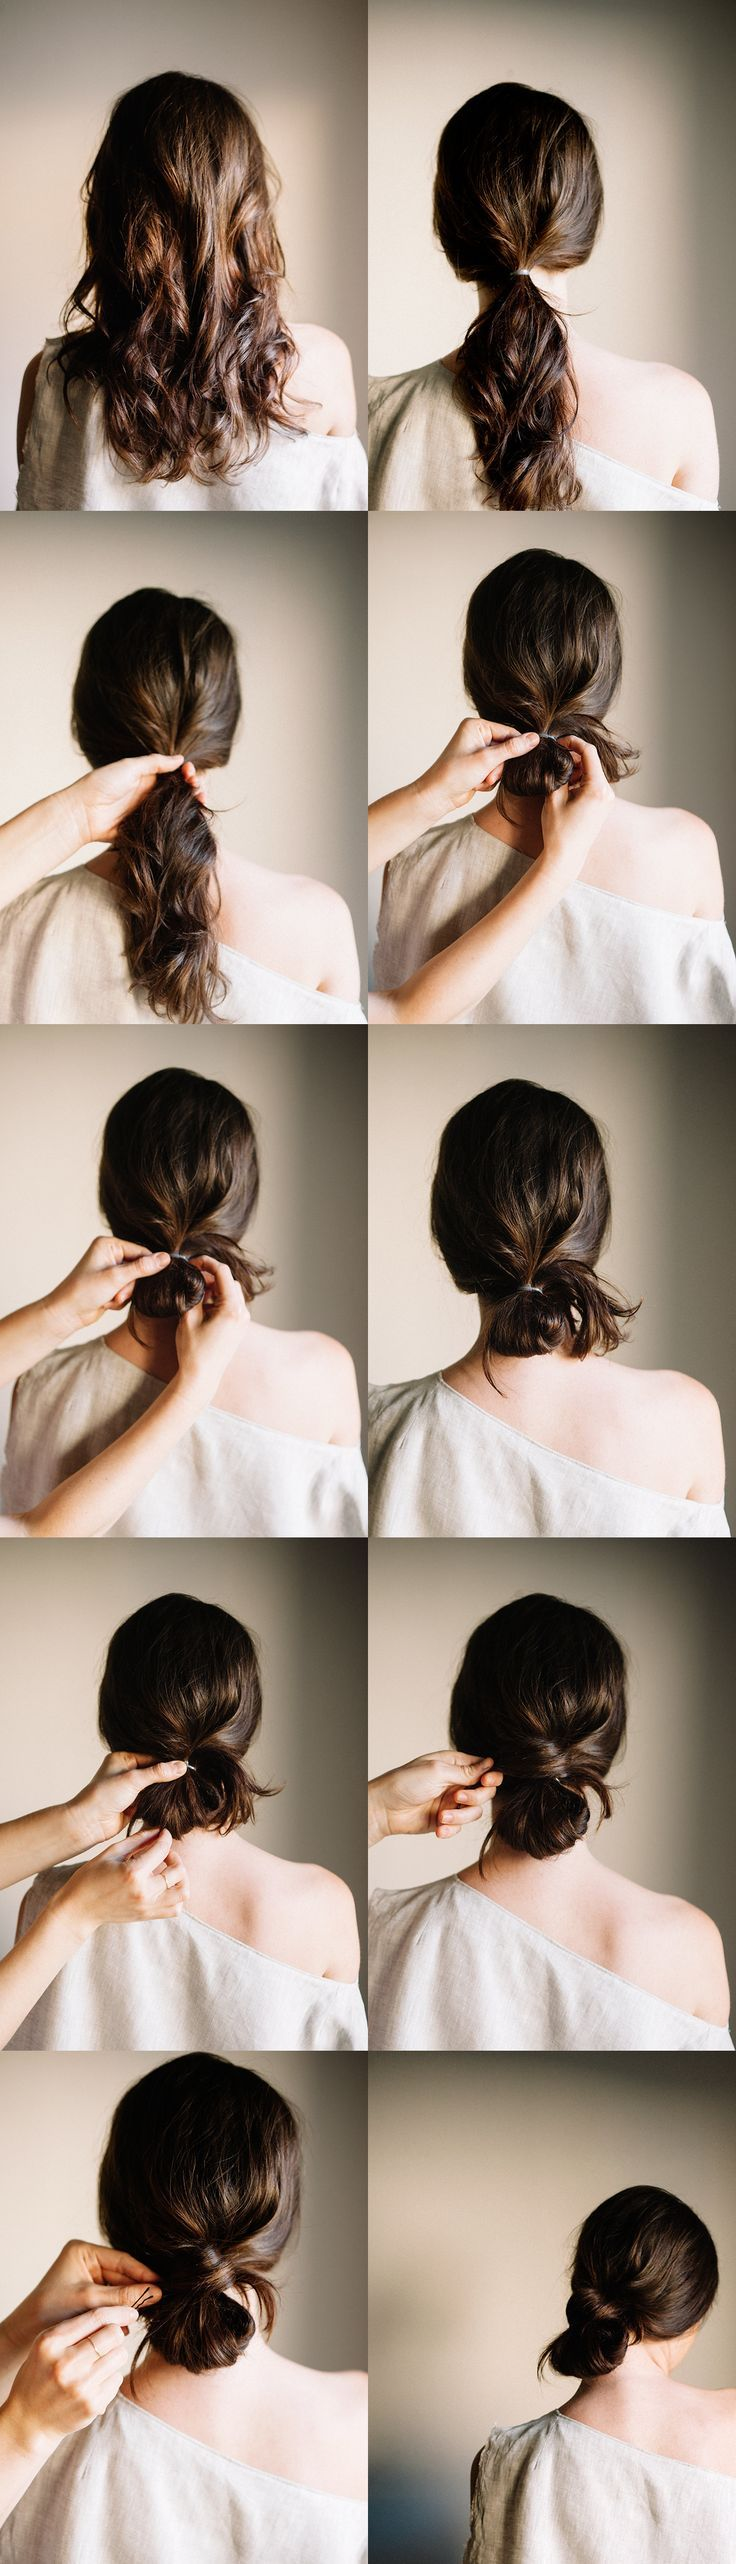 How to make DIY low knot!